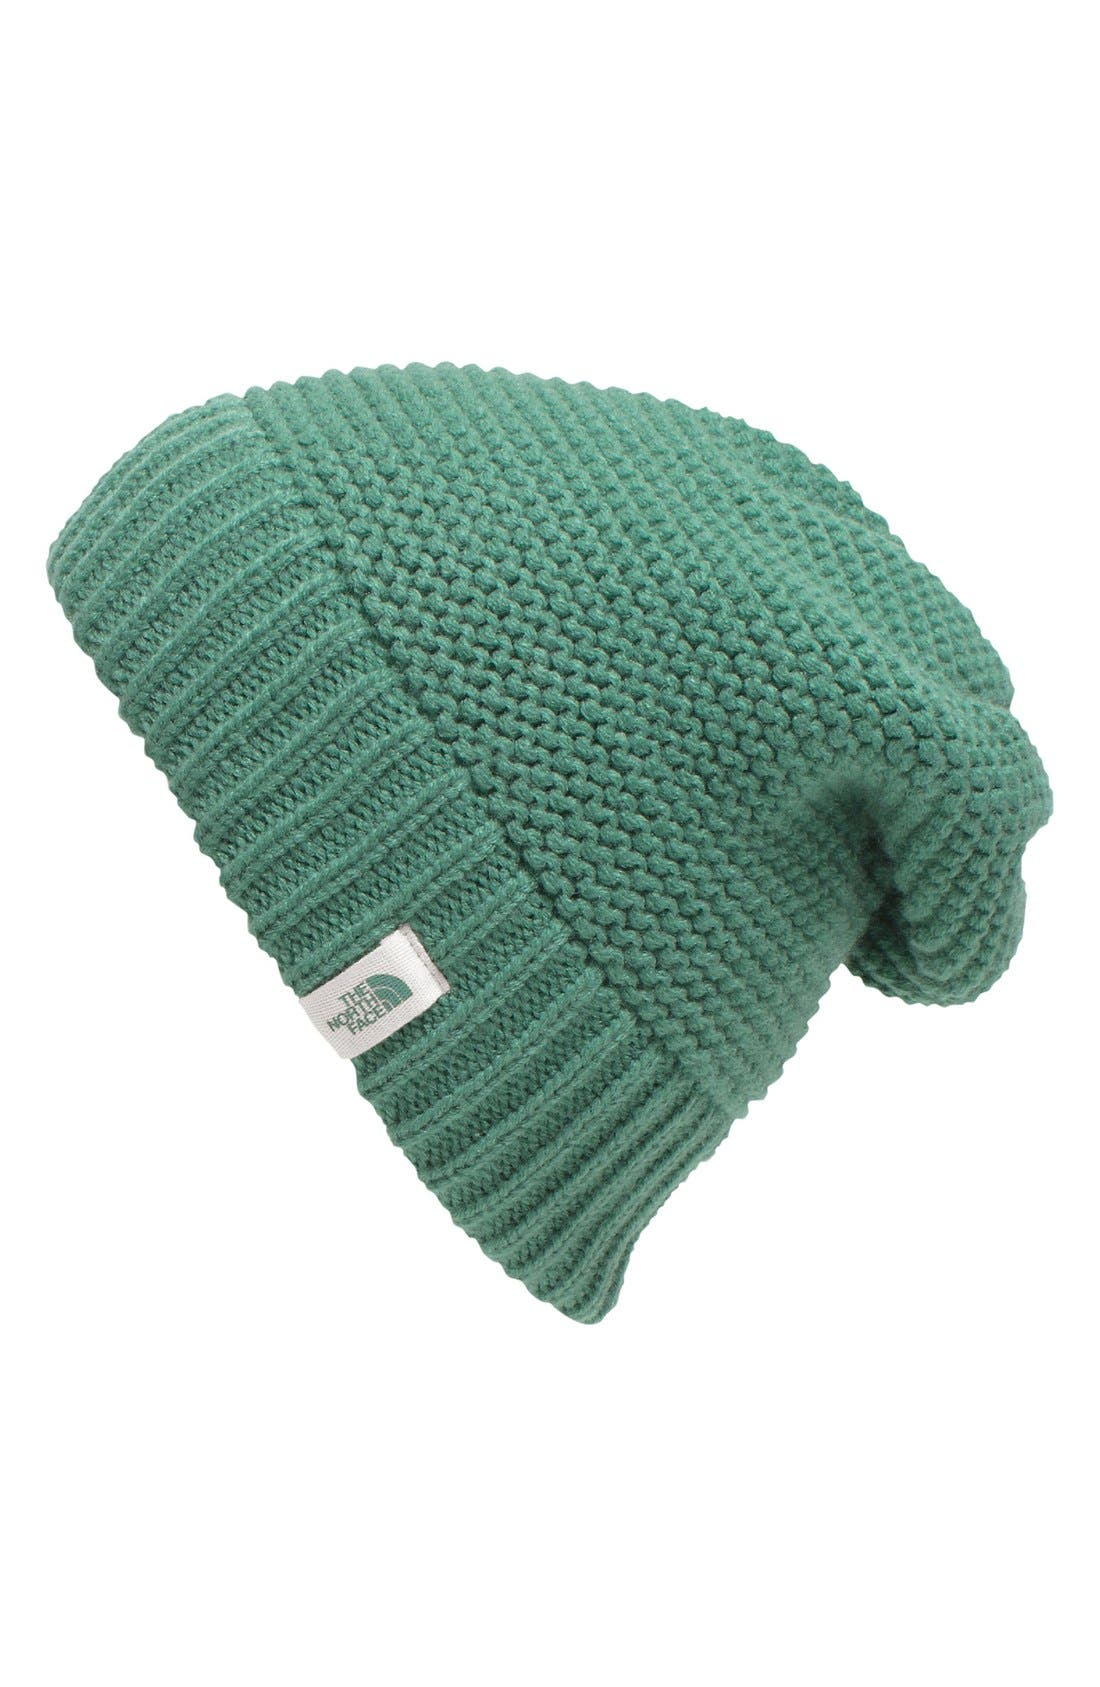 Main Image - The North Face 'Purrl' Knit Beanie